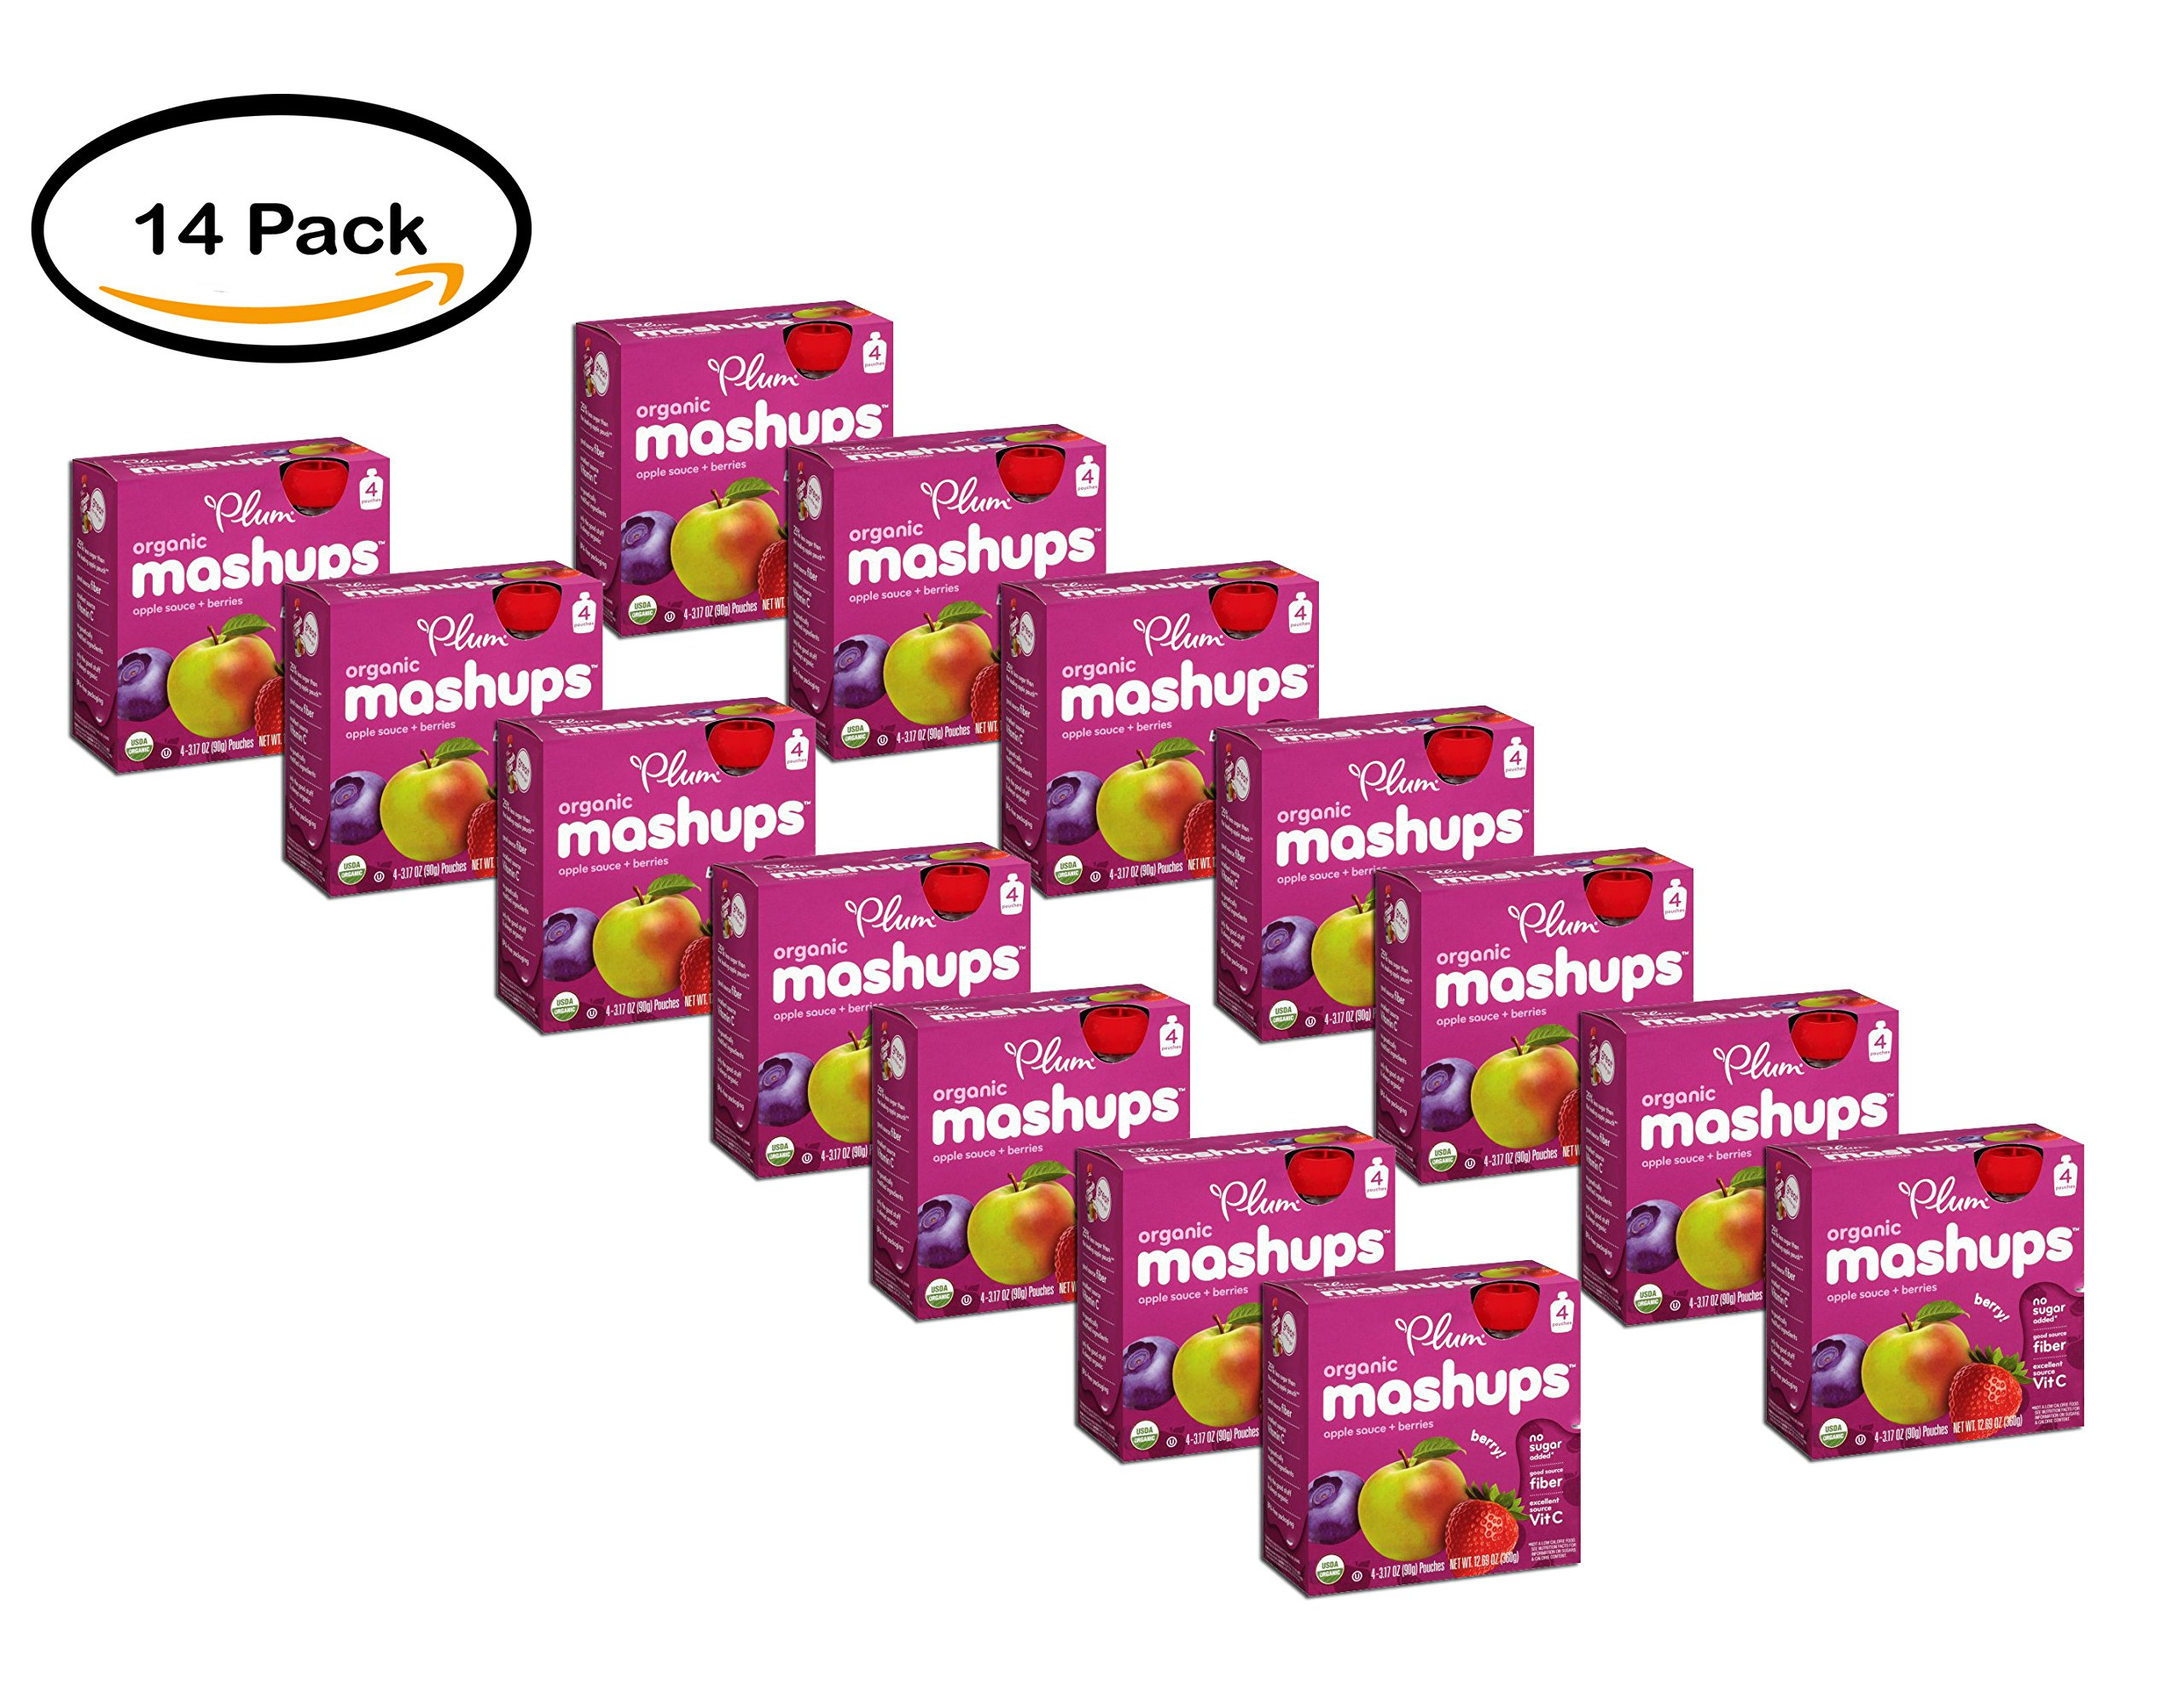 PACK OF 14 - Plum Organics Mashups Berry Apple Sauce 4-3.17 oz. Pouches